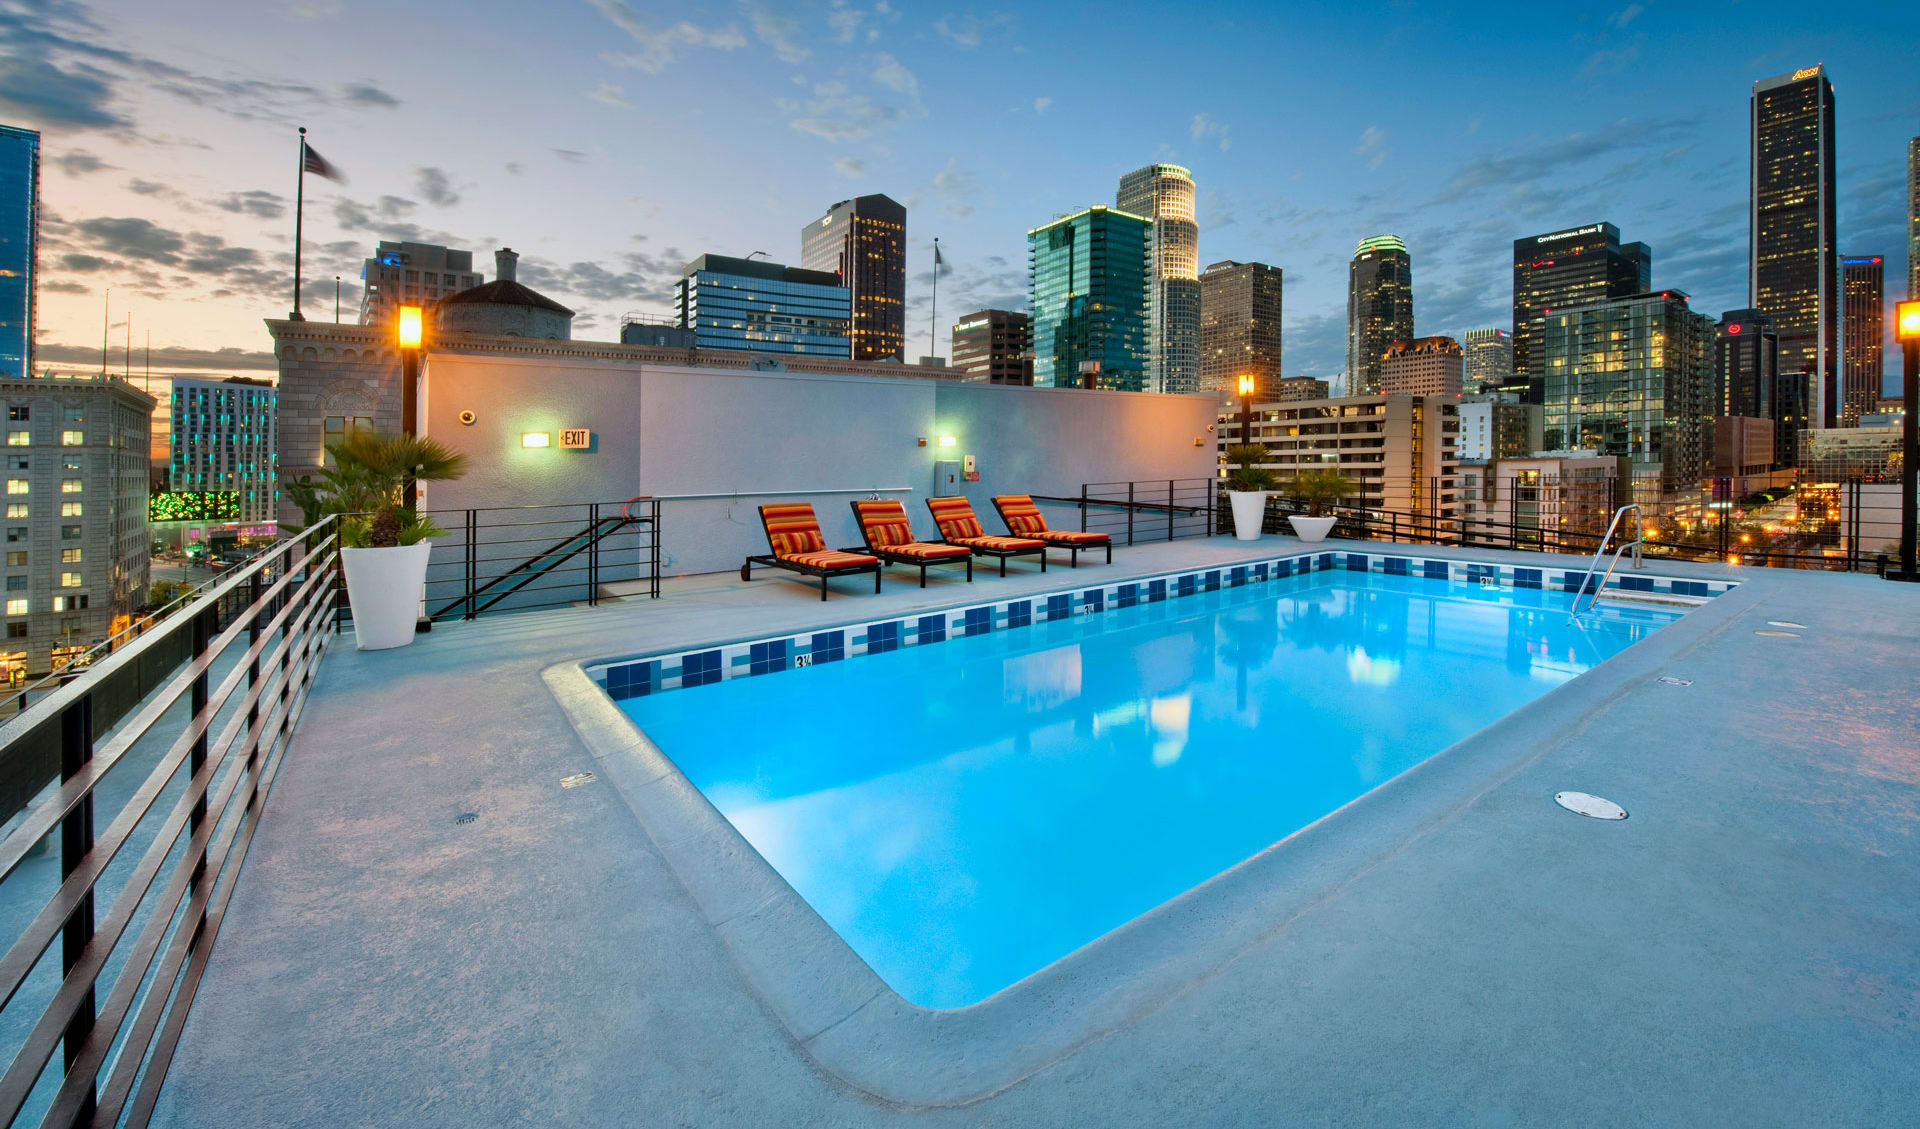 Rooftop Pool at Renaissance Tower, Los Angeles, CA